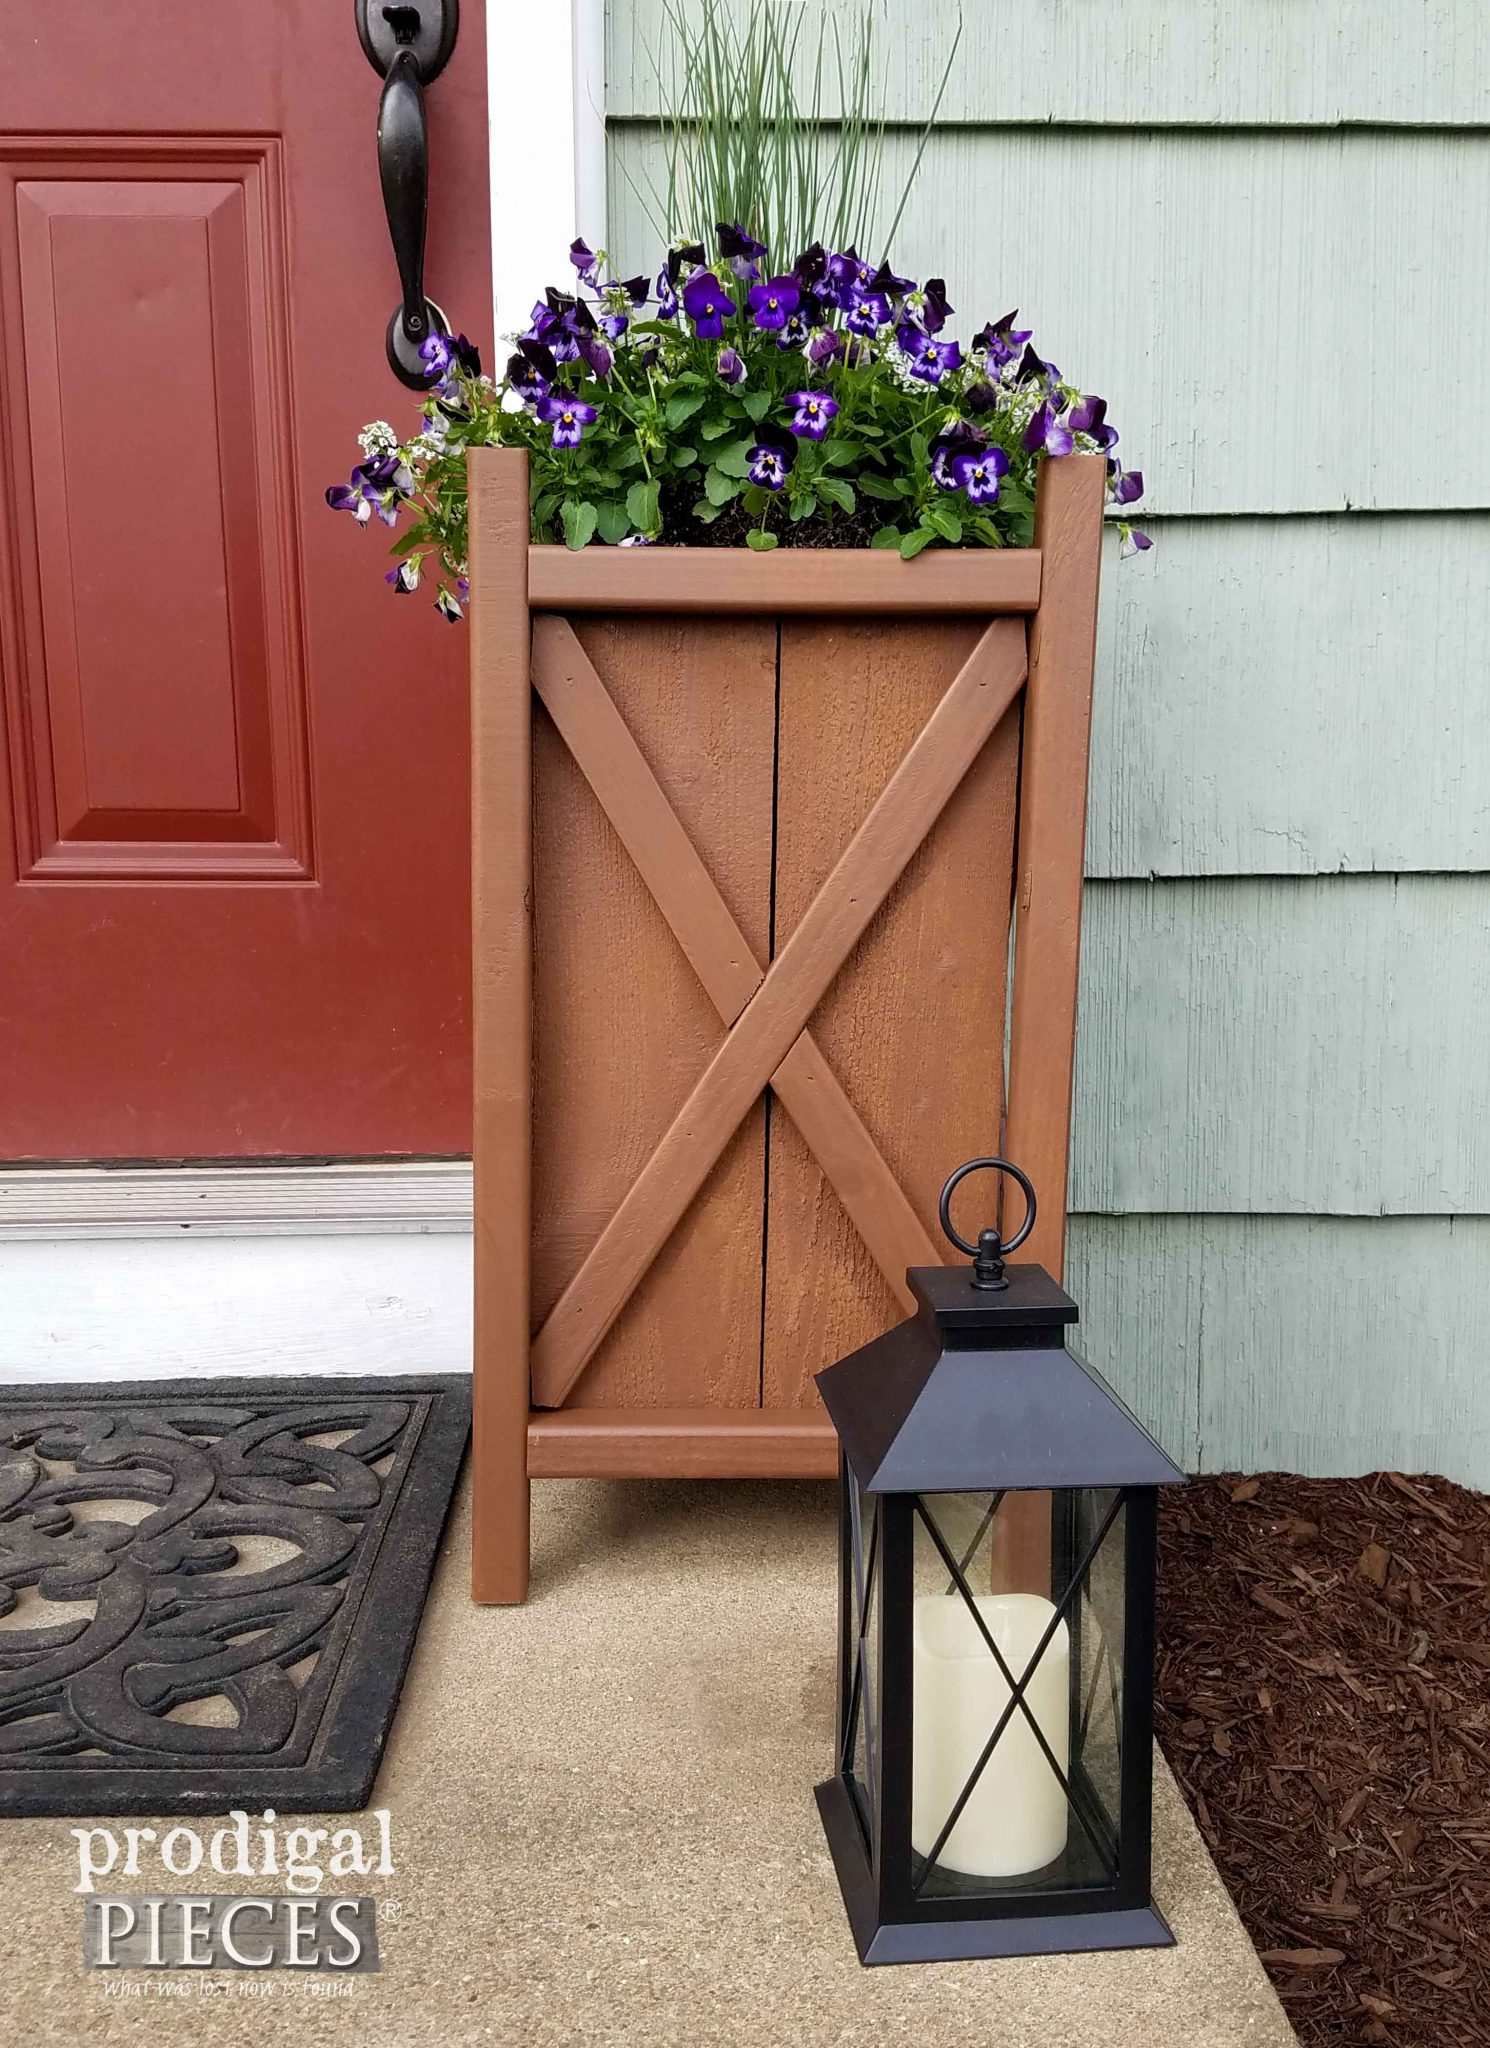 Easy Build DIY Planter with plans by Prodigal Pieces | prodigalpieces.com